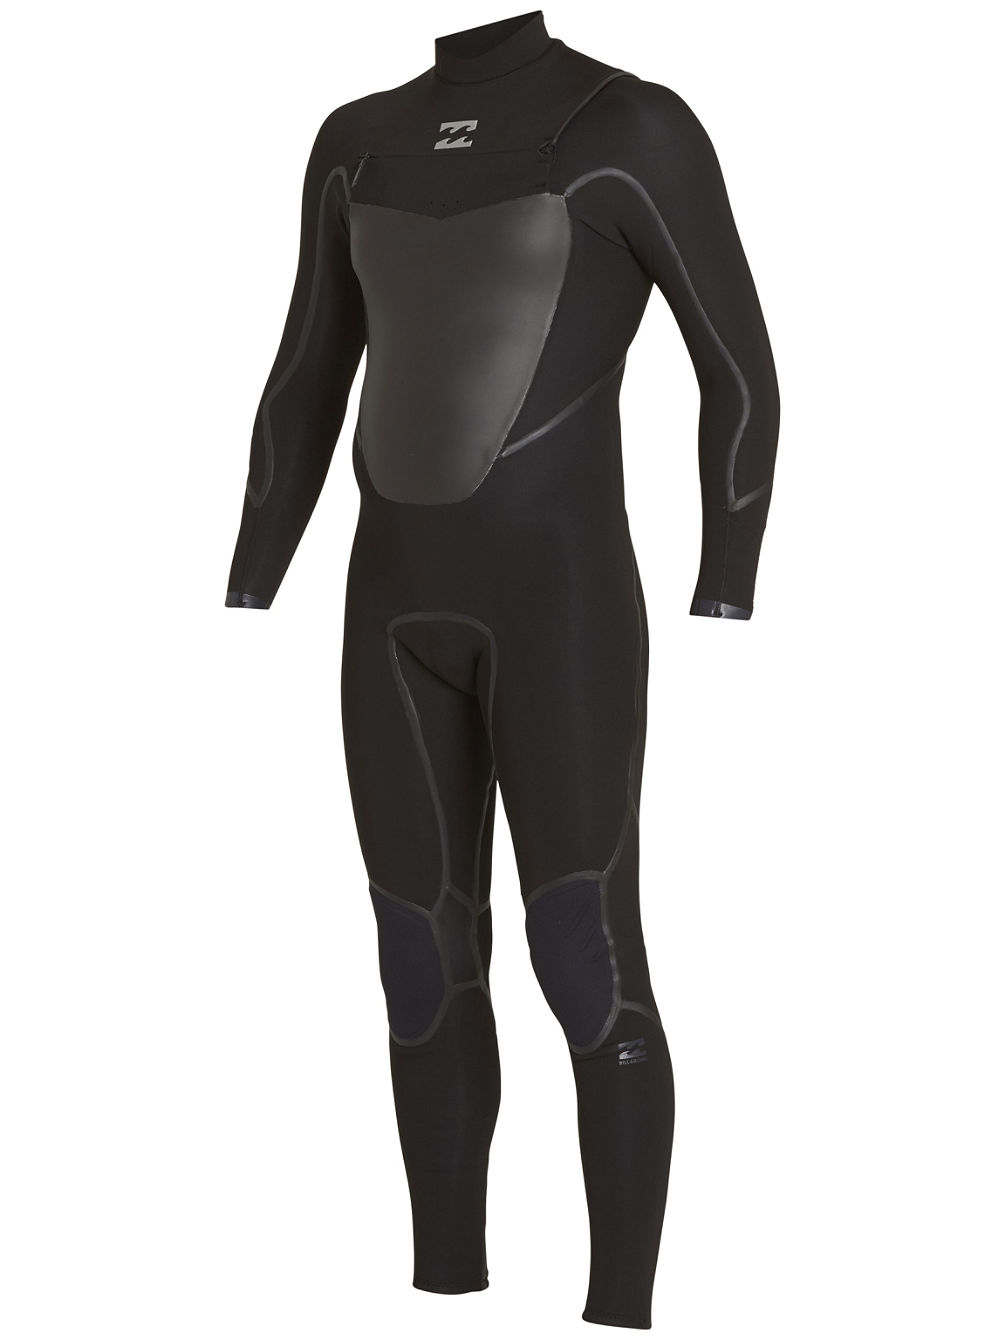 3/2 Absolute X Chest Zip Wetsuit